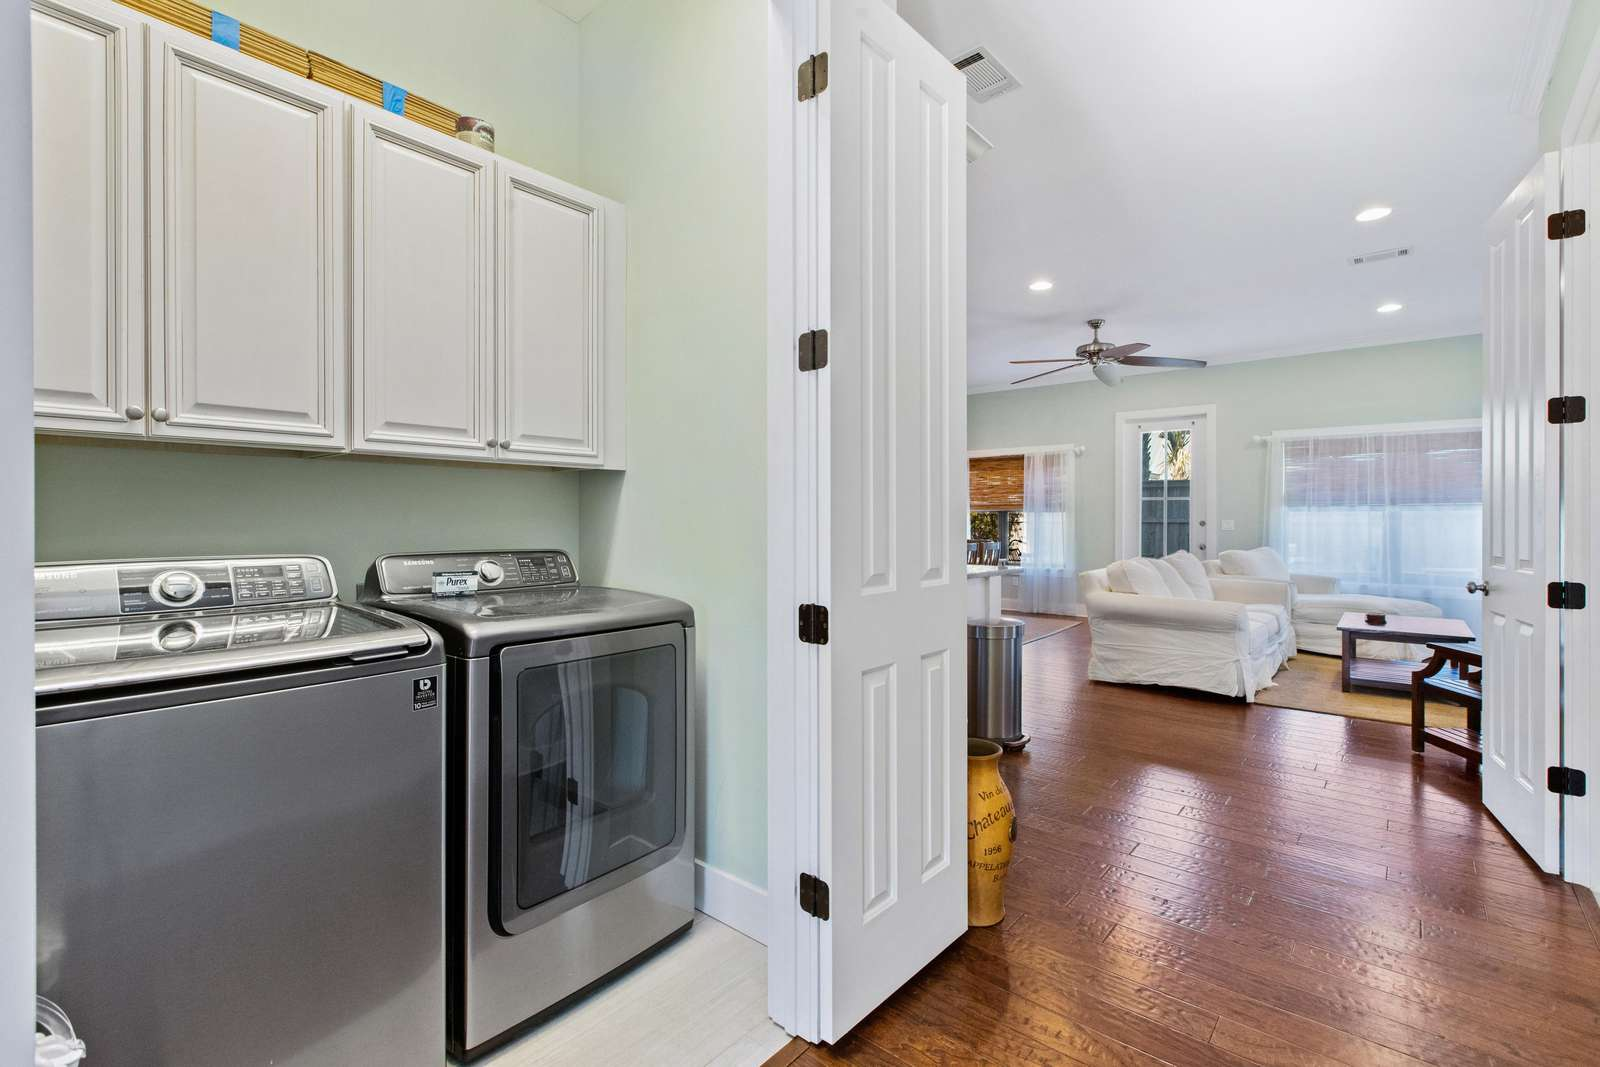 Centrally located entryway laundry room